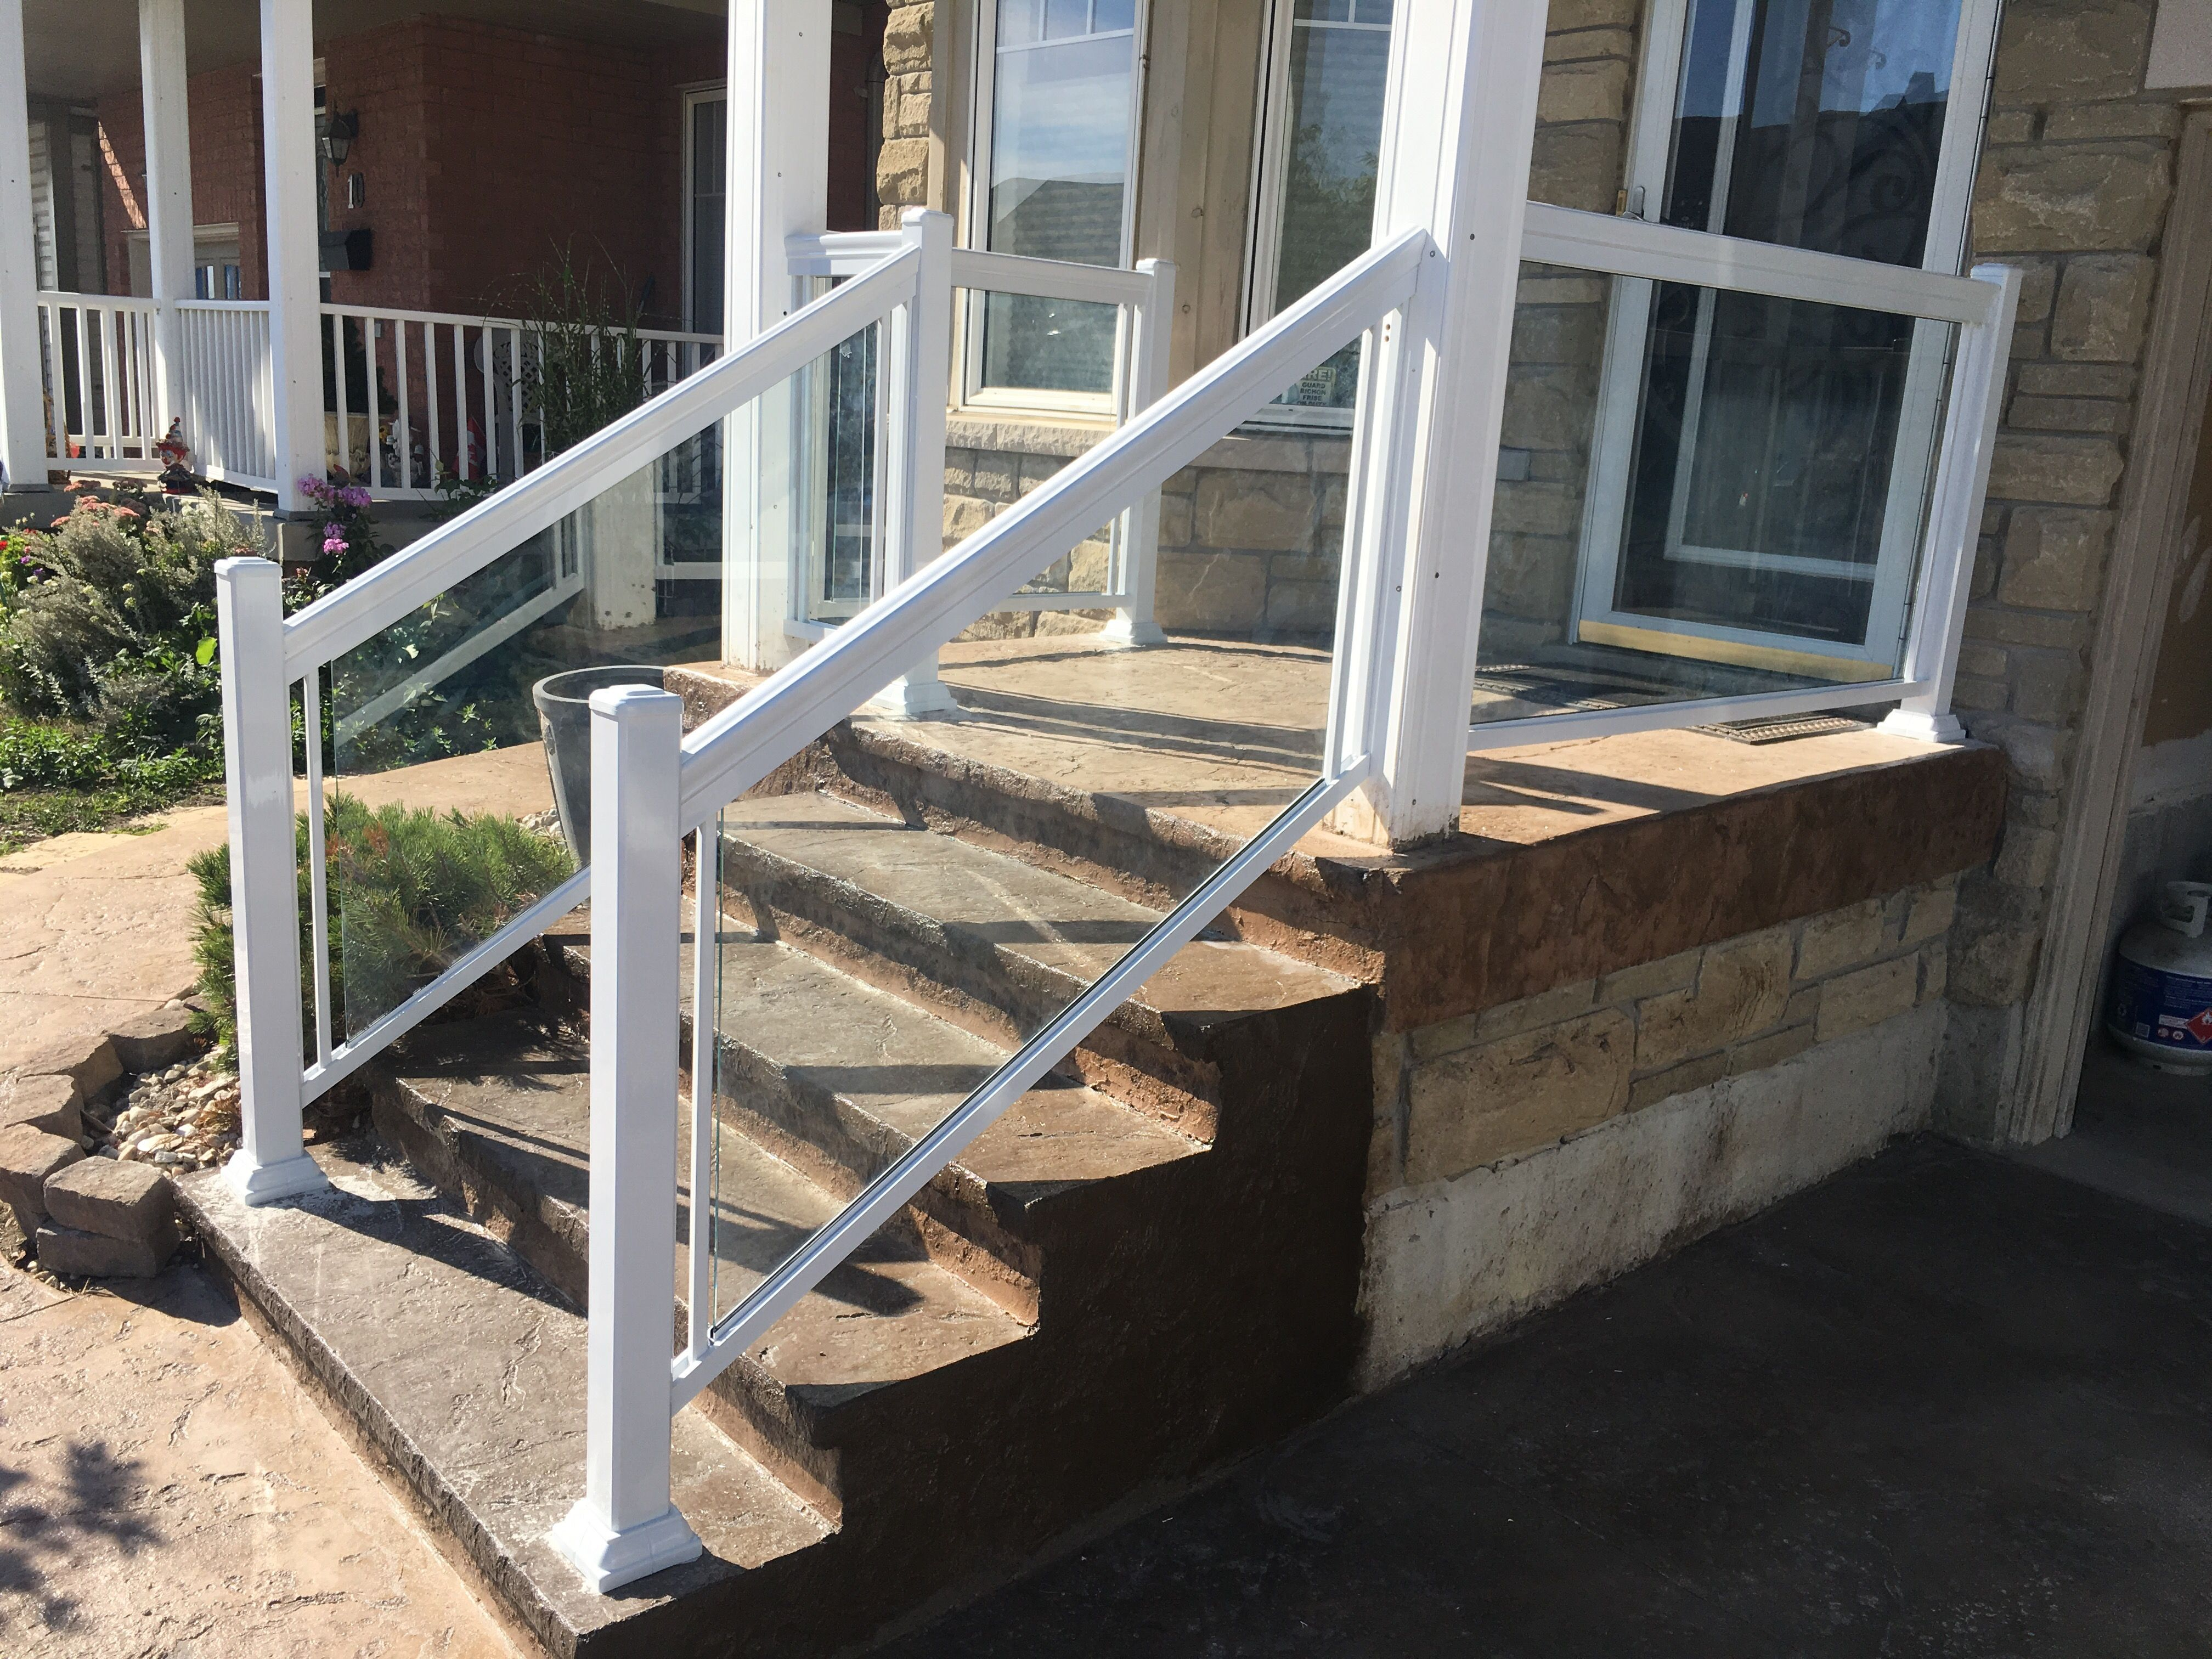 Find This Pin And More On Glass Railings By Aluminumrailing